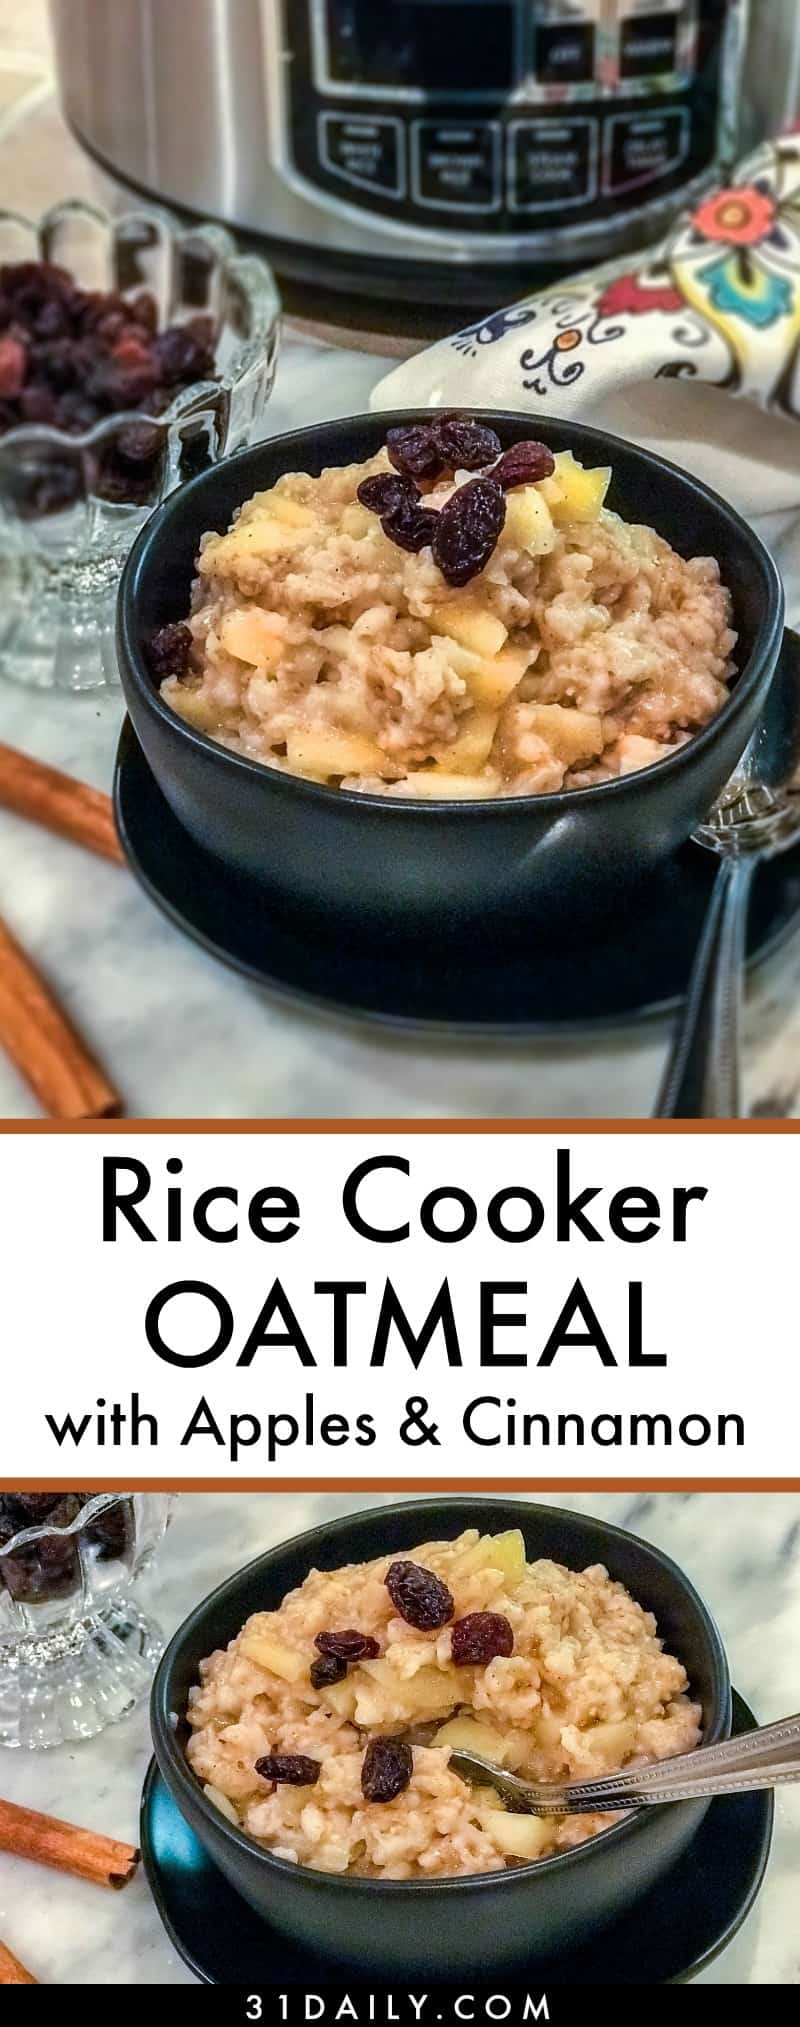 Easy Rice Cooker Oatmeal with Apples and Cinnamon | 31Daily.com